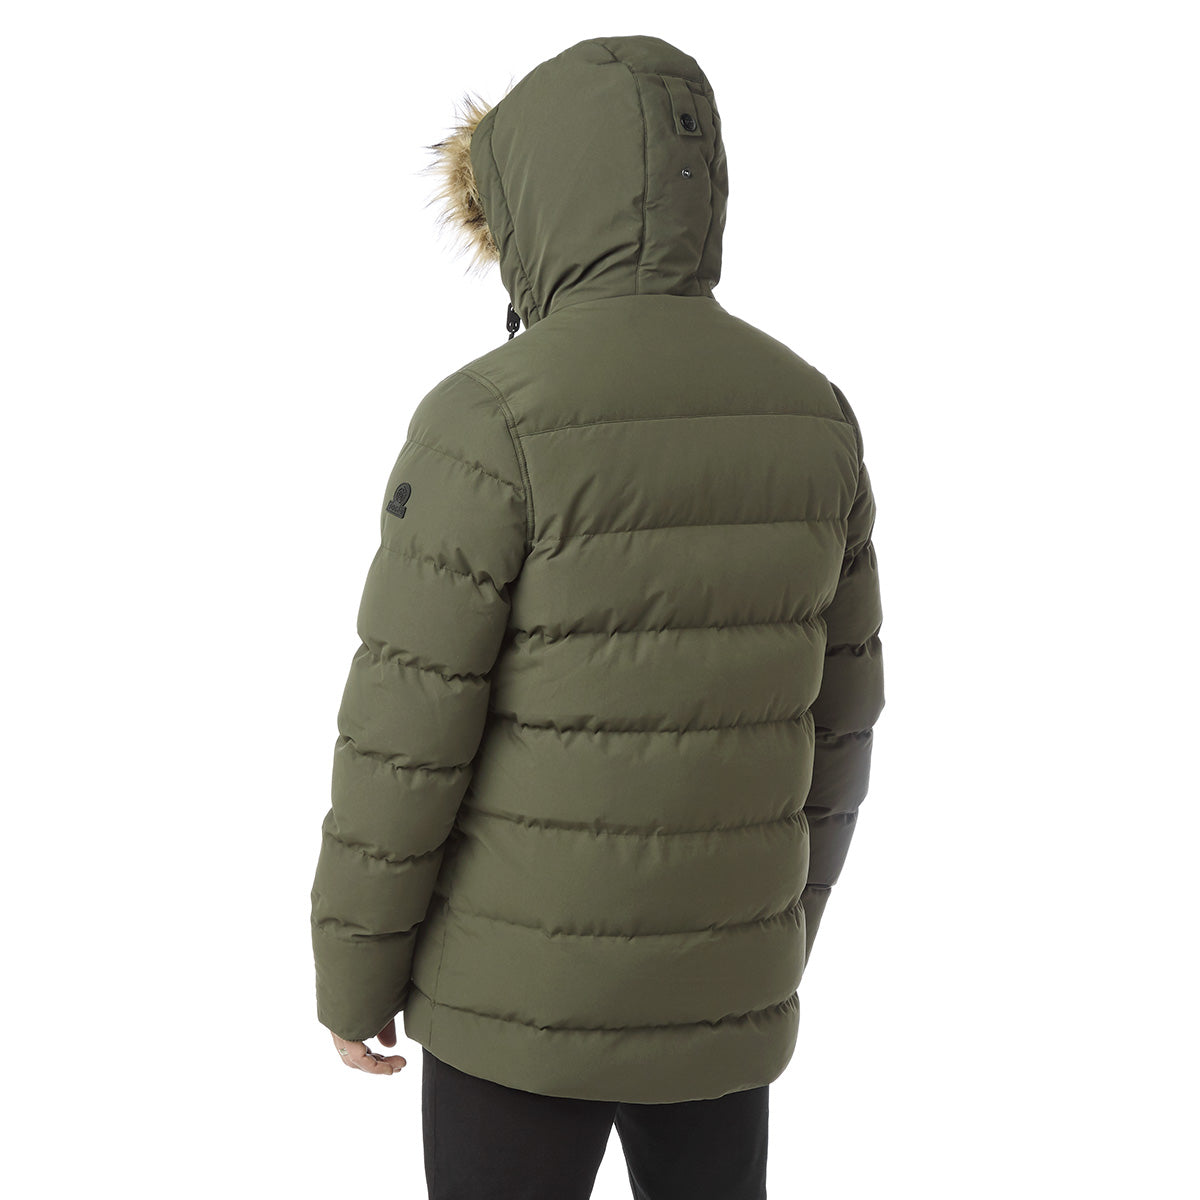 Arctic Mens Insulated Jacket - Dark Khaki image 4